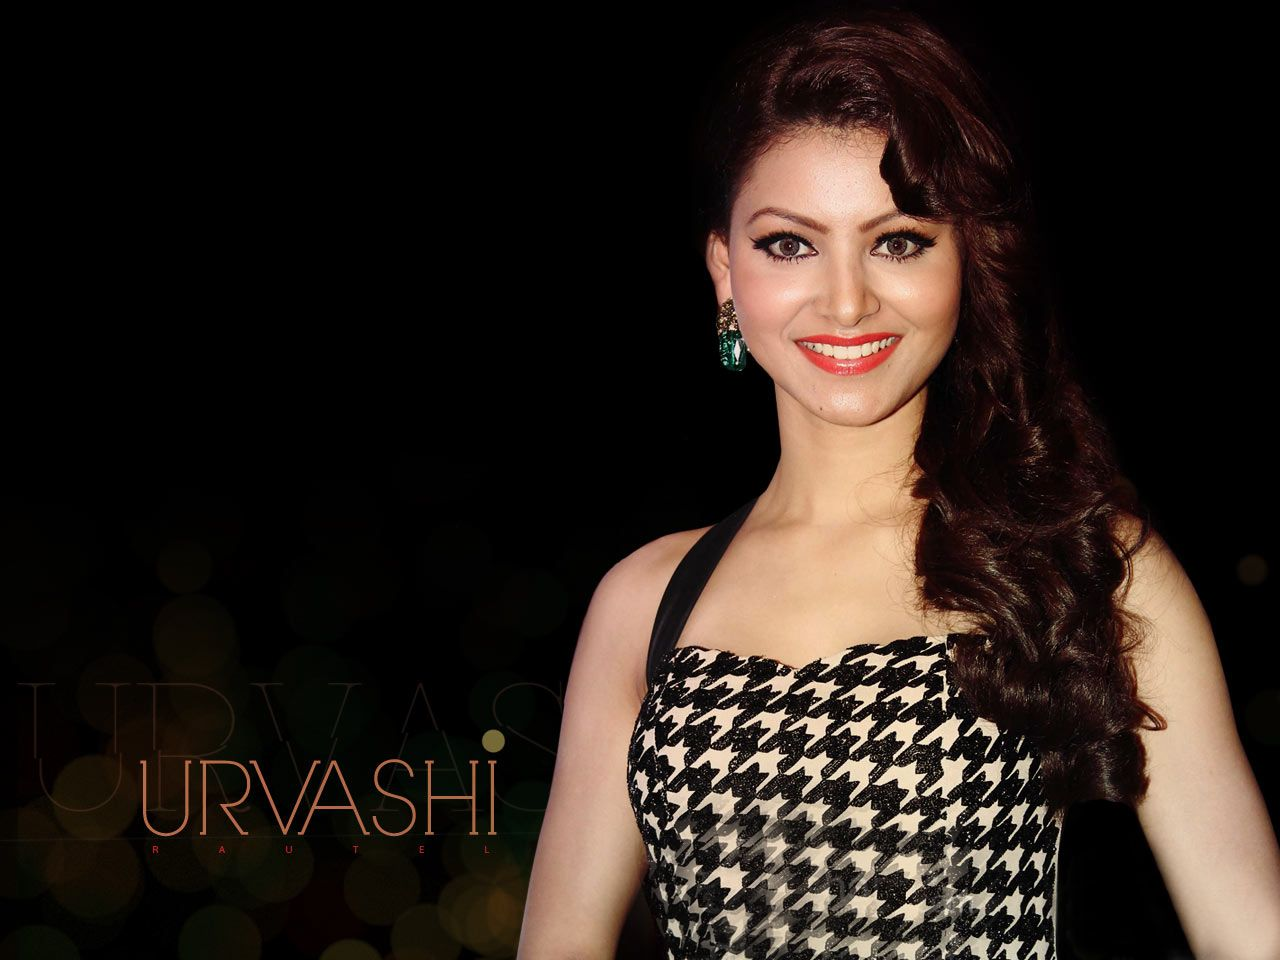 Hd wallpaper urvashi - Search Results For Urvashi Rautela Hd Wallpapers Hot Adorable Wallpapers